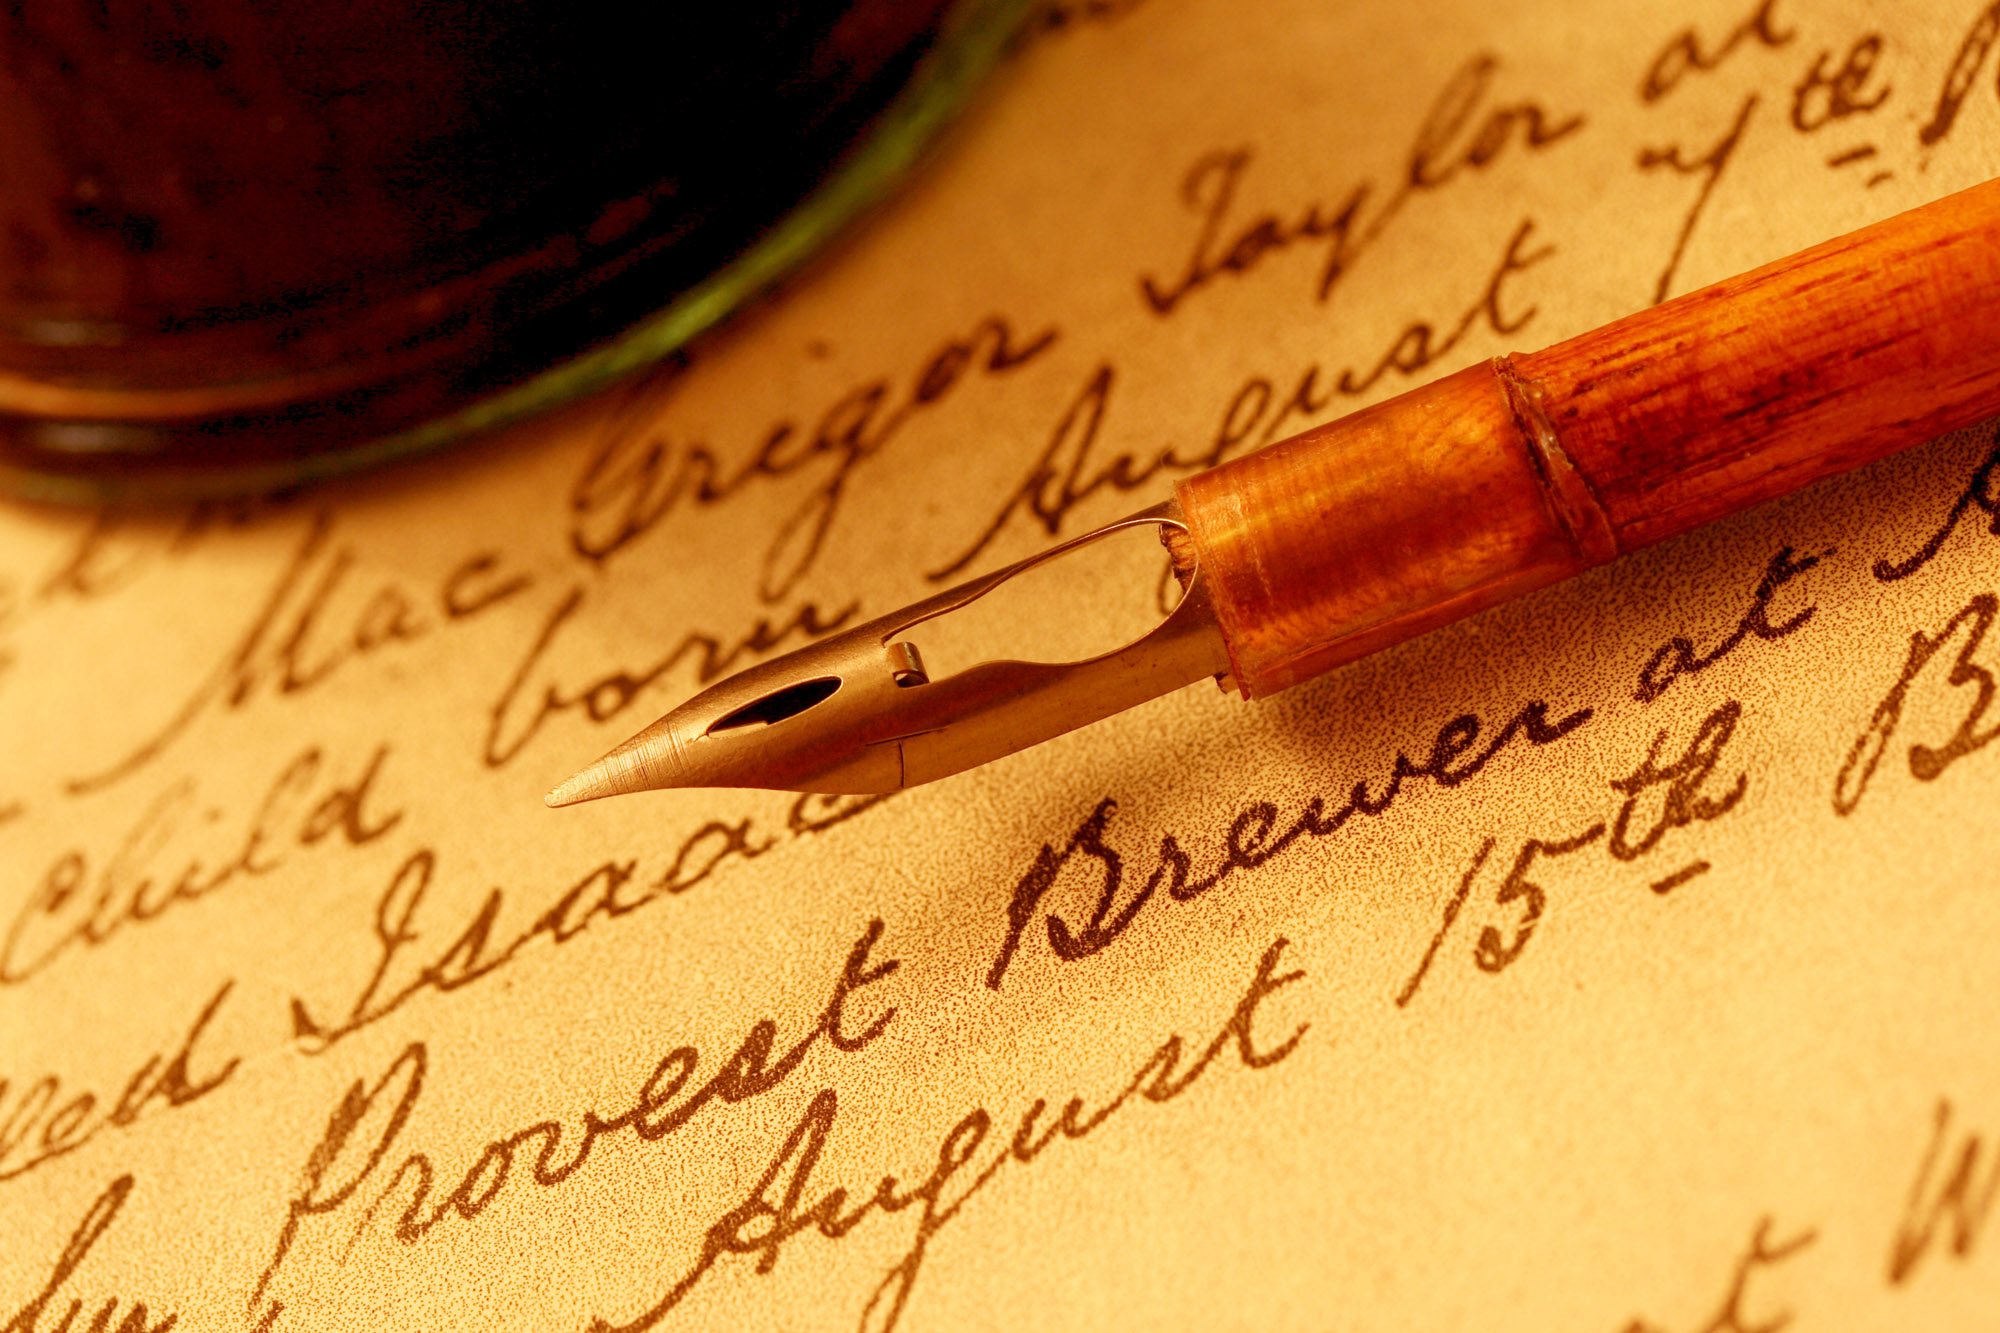 Vintage wooden-handled nib pen and inkwell, on a page of 18th century script.